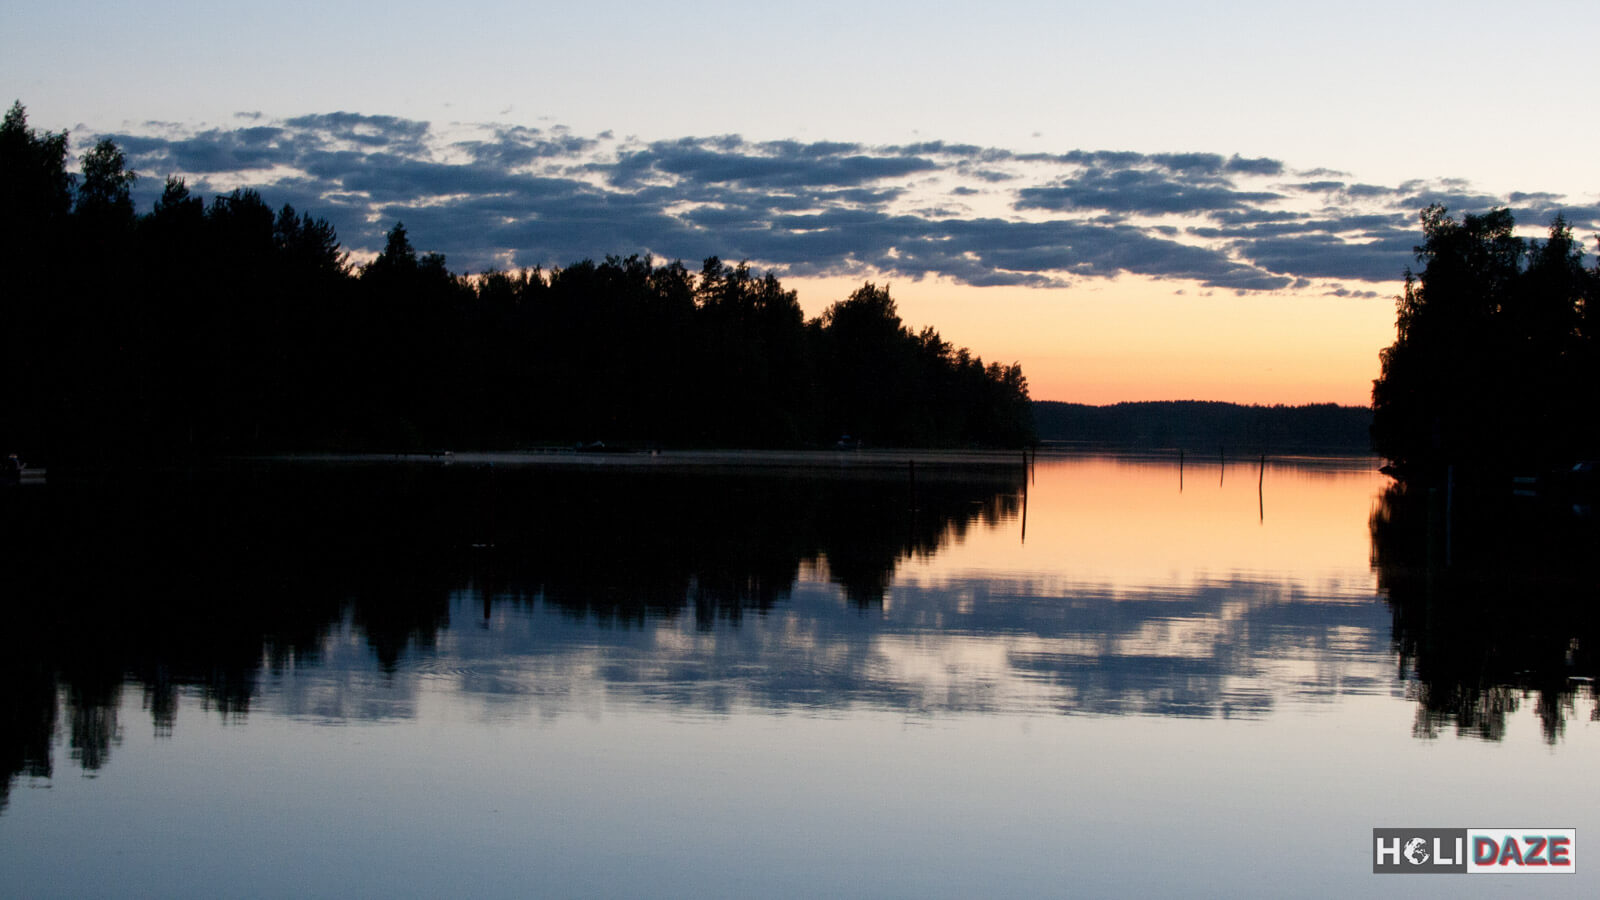 Lake Saimaa, the largest lake in Finland and one of the largest lakes in the world